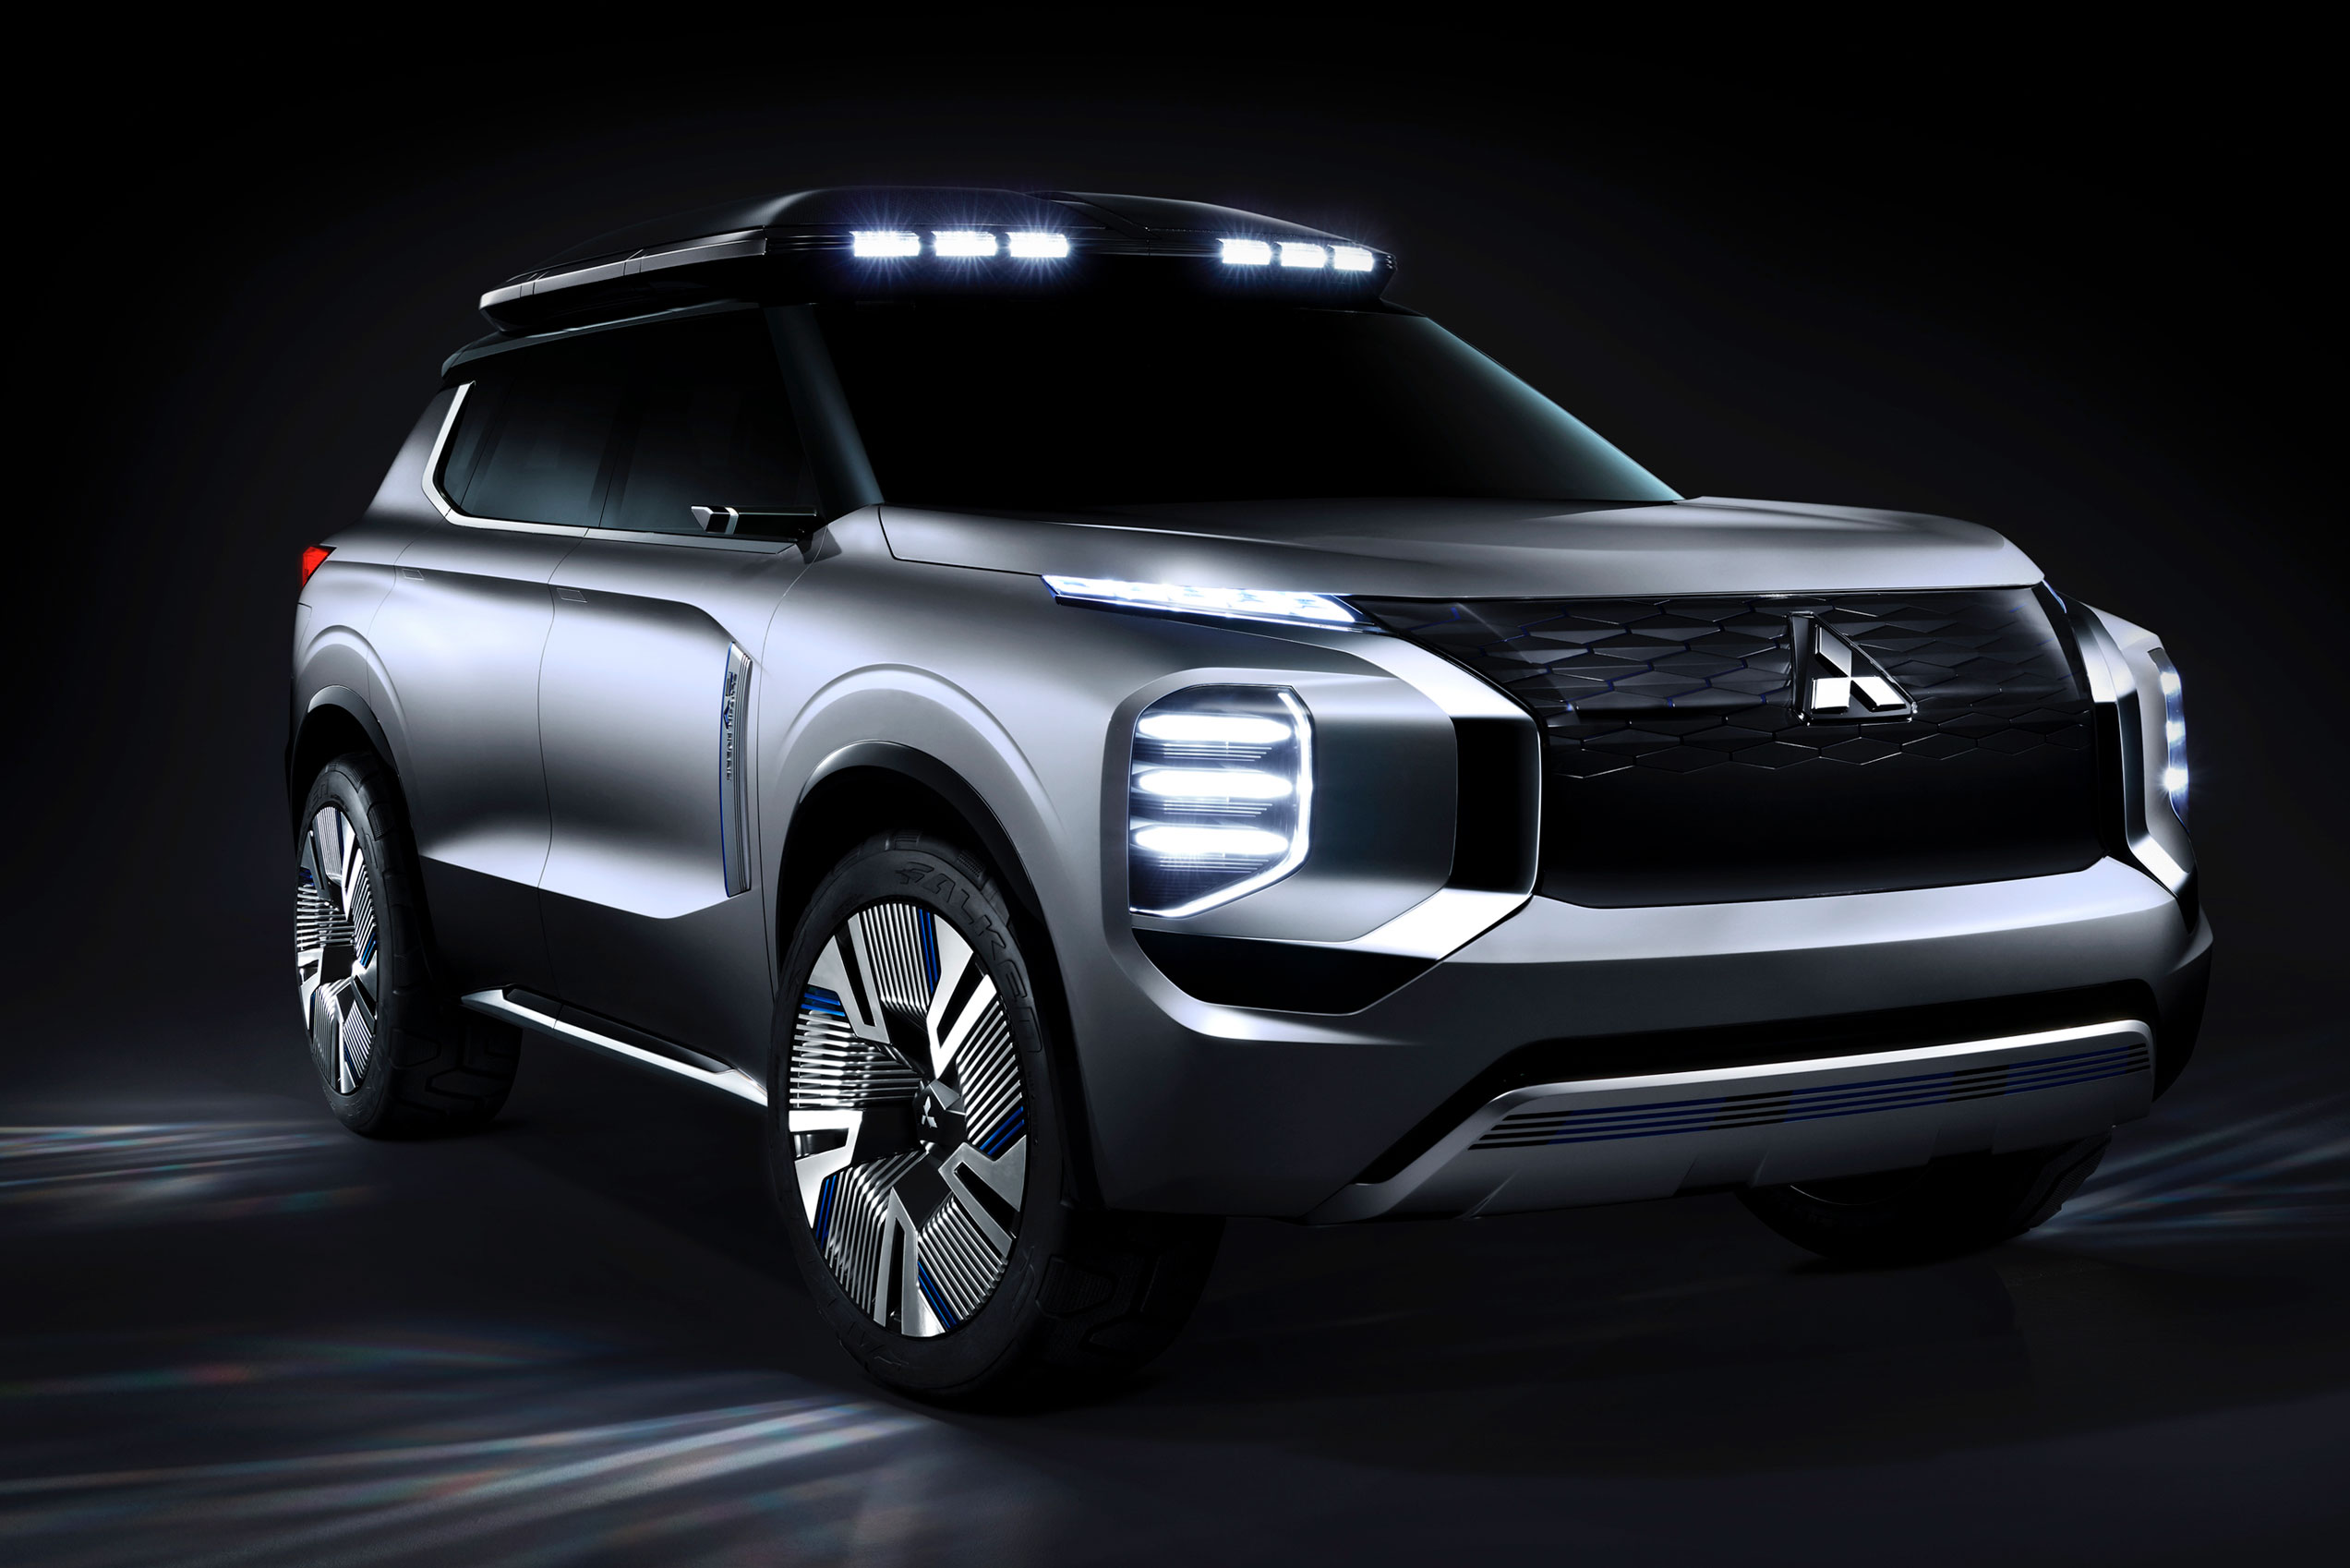 Mitsubishi Engleberg Tourer concept hybrid SUV headlights in the dark